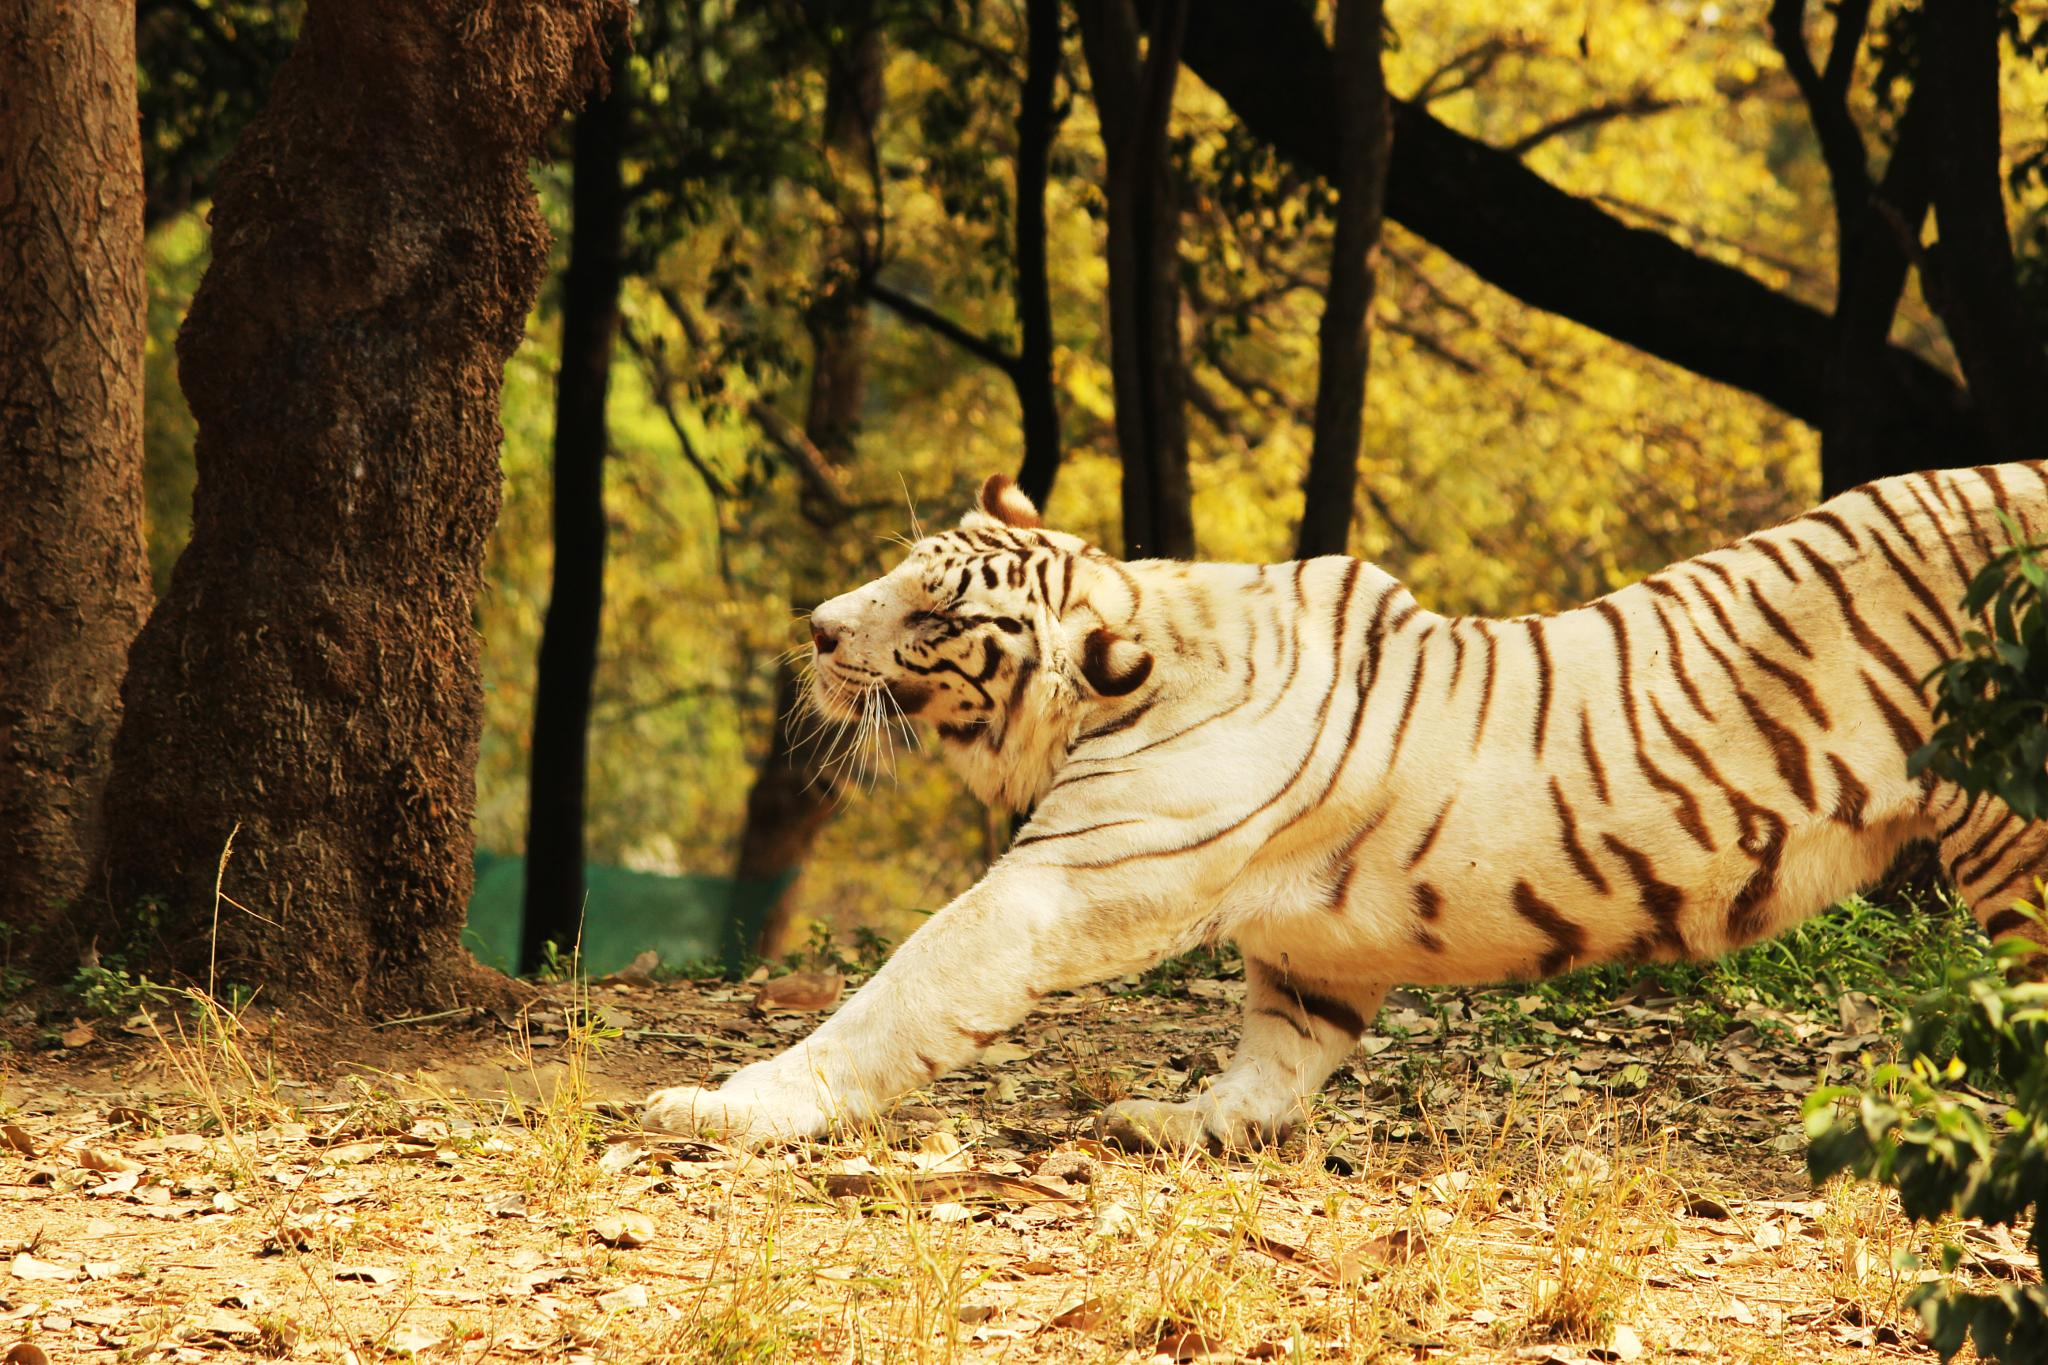 The Bengal White Tiger by Maxwel Samael